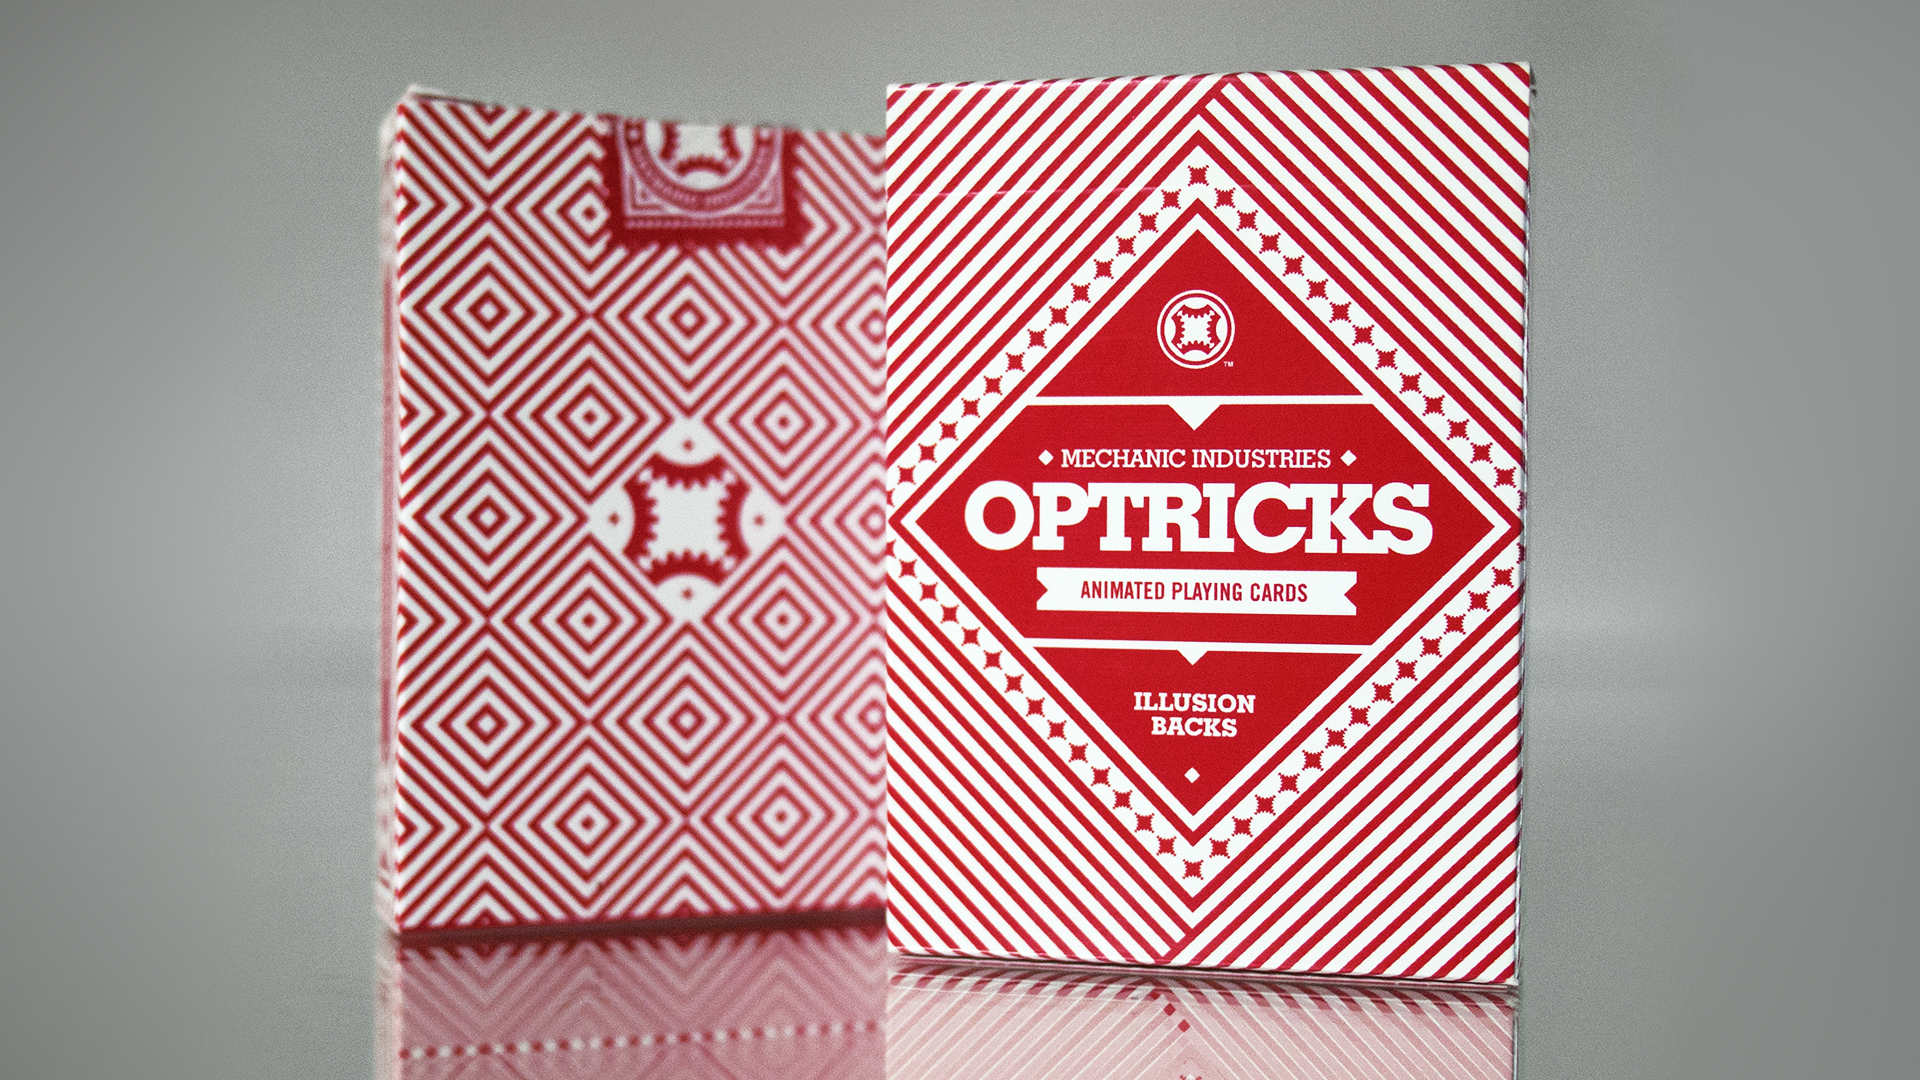 OPTRICKS RED    OPTICAL ILLUSION GAFF CARDS    VIEW DETAILS